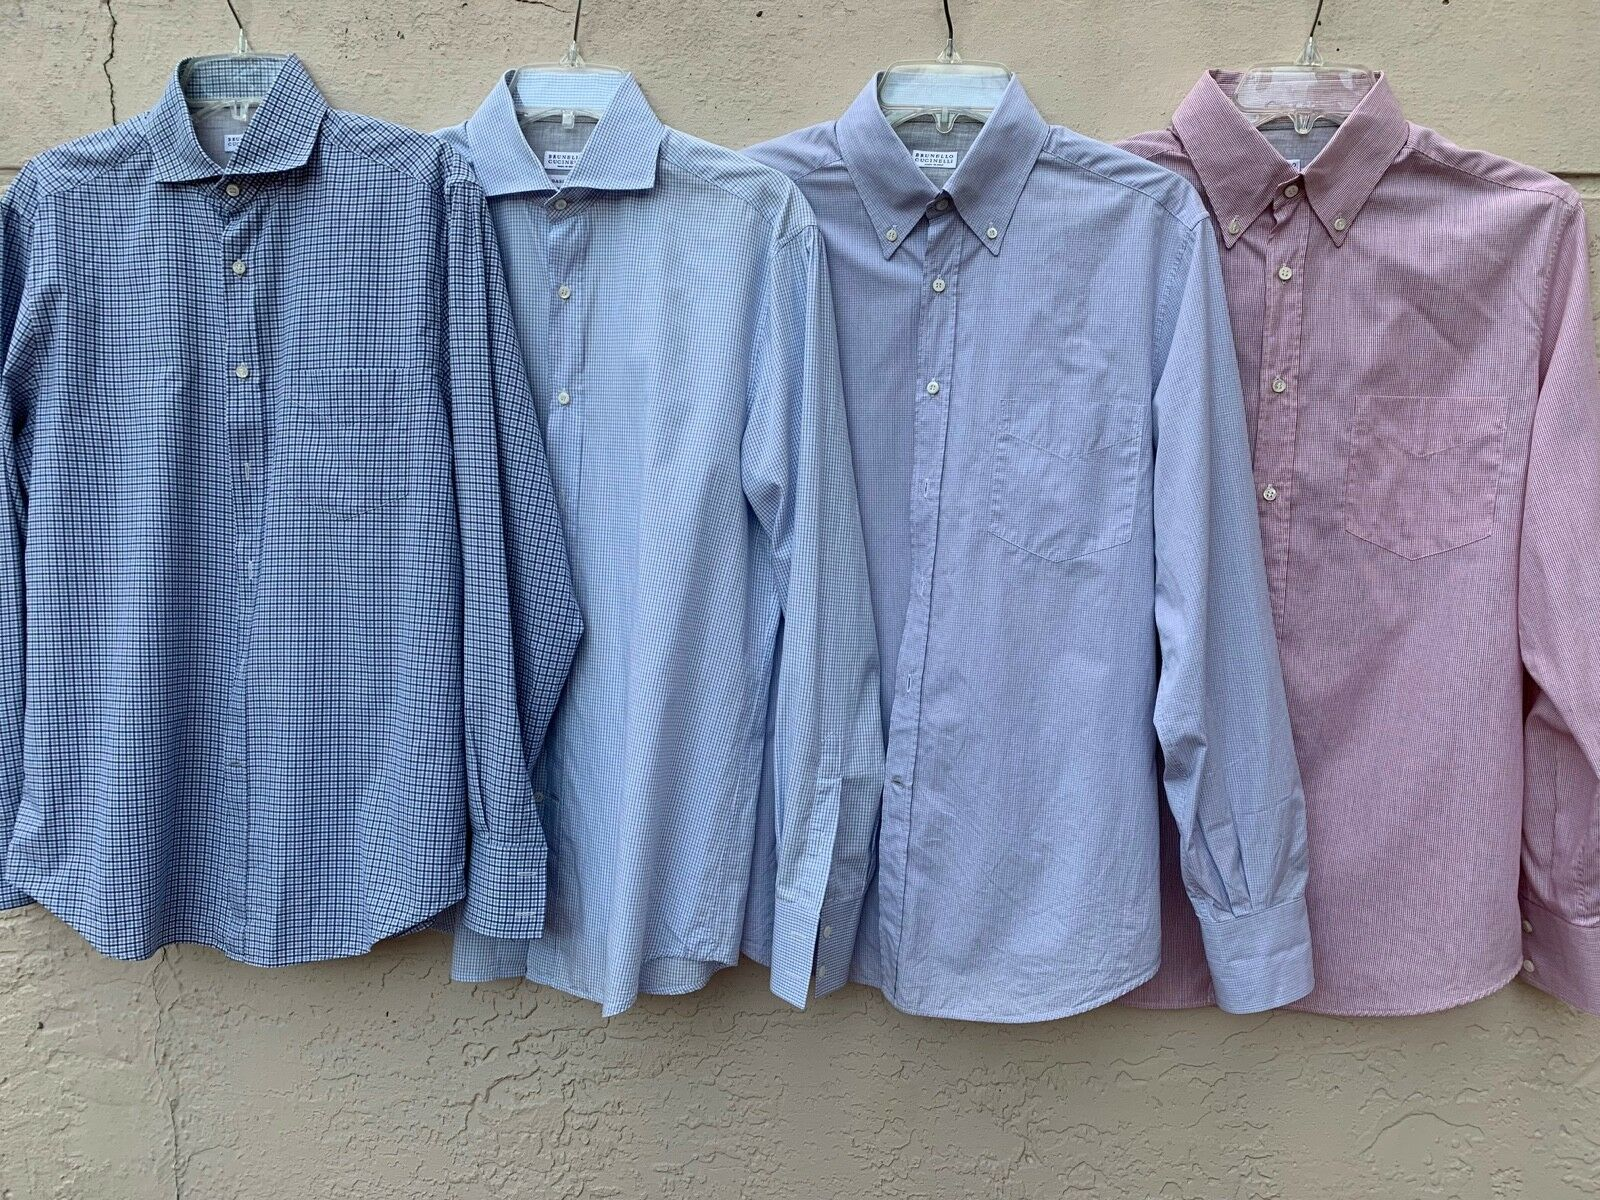 LOT OF 4 BRUNELLO CUCINELLI BESPOKE MENS BUTTON DOWN SHIRTS ITALY SZ M